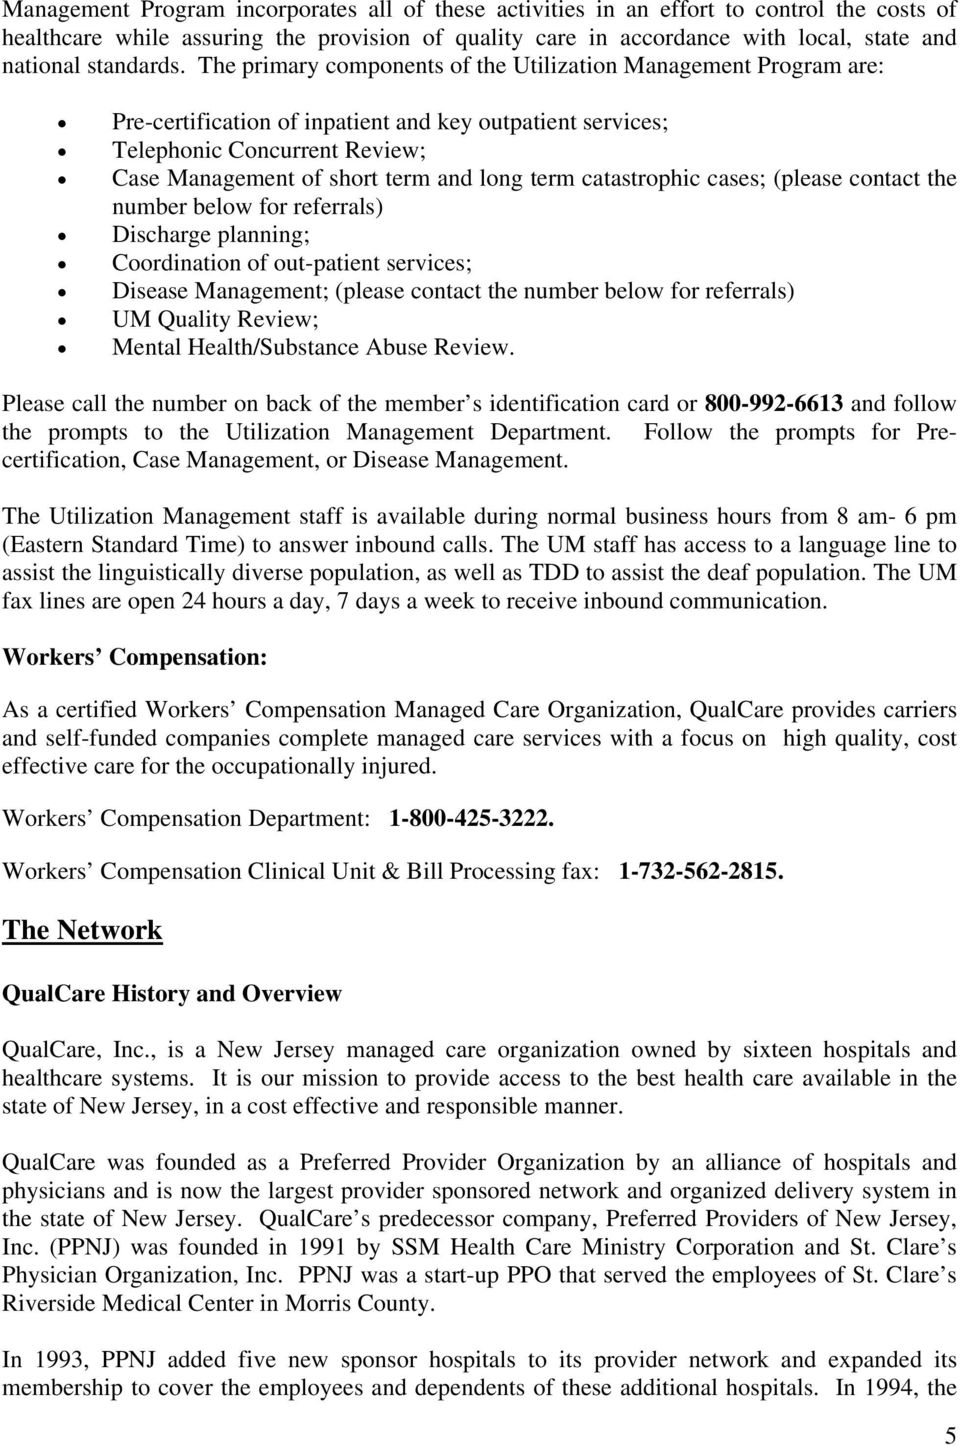 Welcome To Qualcare Inc Pdf